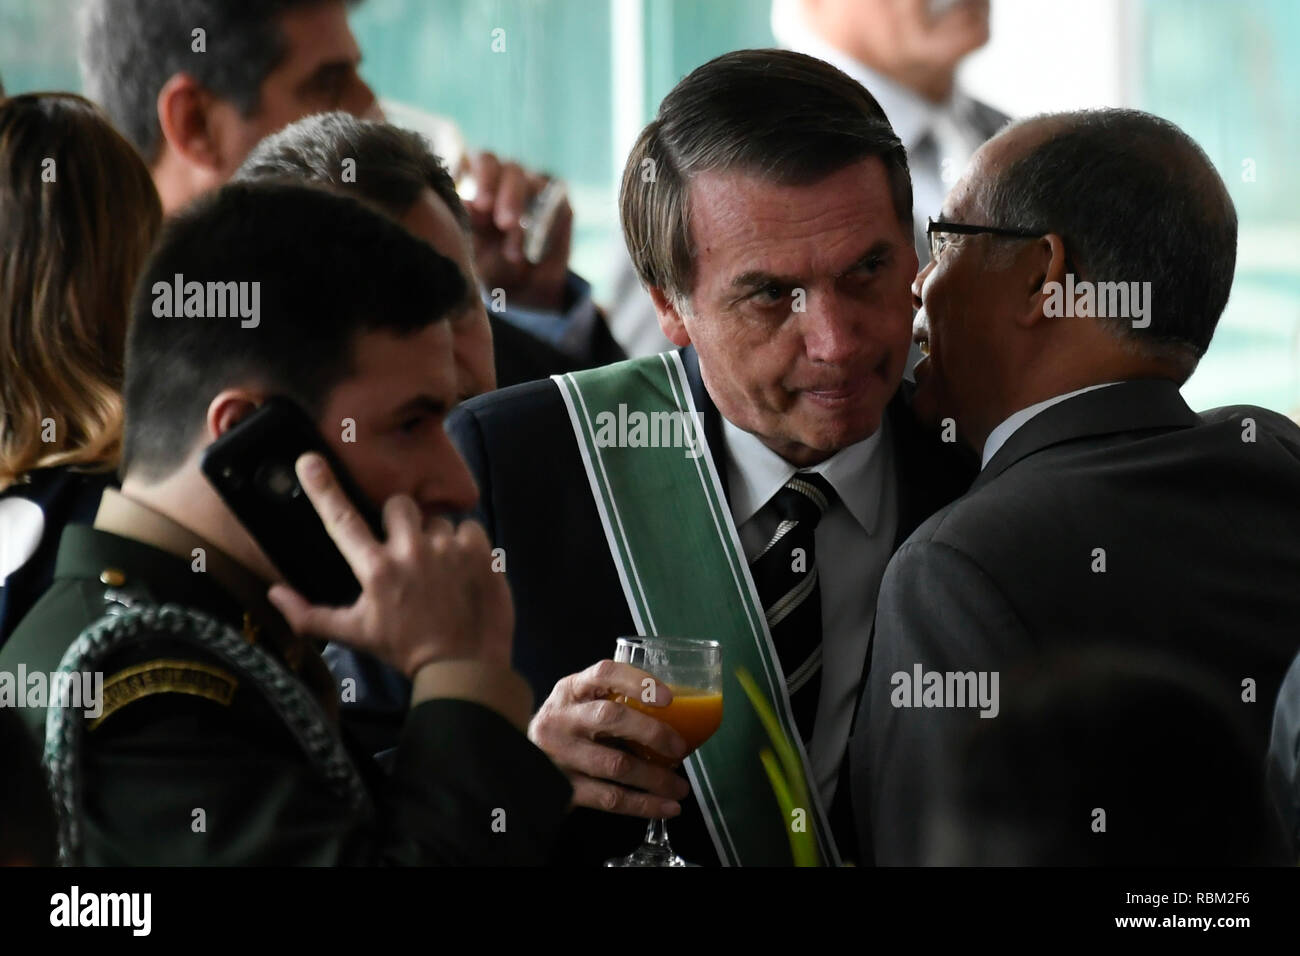 DF - Brasilia - 10/01/2019 - Possession of the commander-in-chief of the Army - Jair Bolsonaro, president of the republic, this Friday, January 11, during a solemnity of passage of the general command of the Army Eduardo Dias da Costa Army Boas General of Army Edson Leal Pujol in a ceremony held at the Army Club. Photo: Mateus Bonomi / AGIF - Stock Image